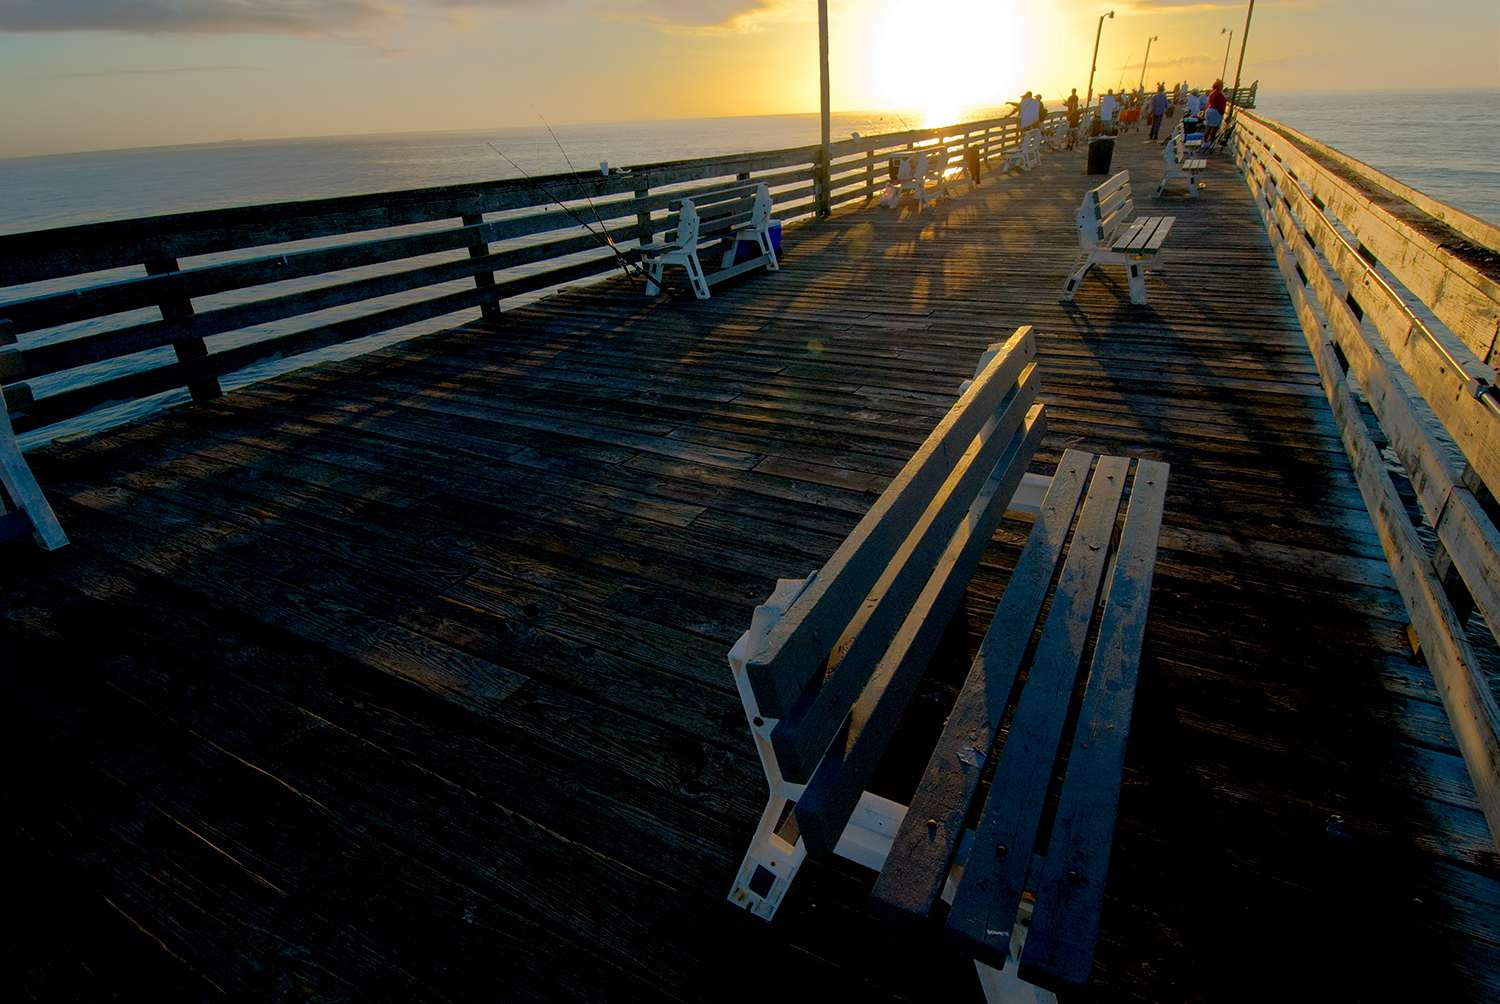 10 Best Things to Do at the Virginia Beach Boardwalk